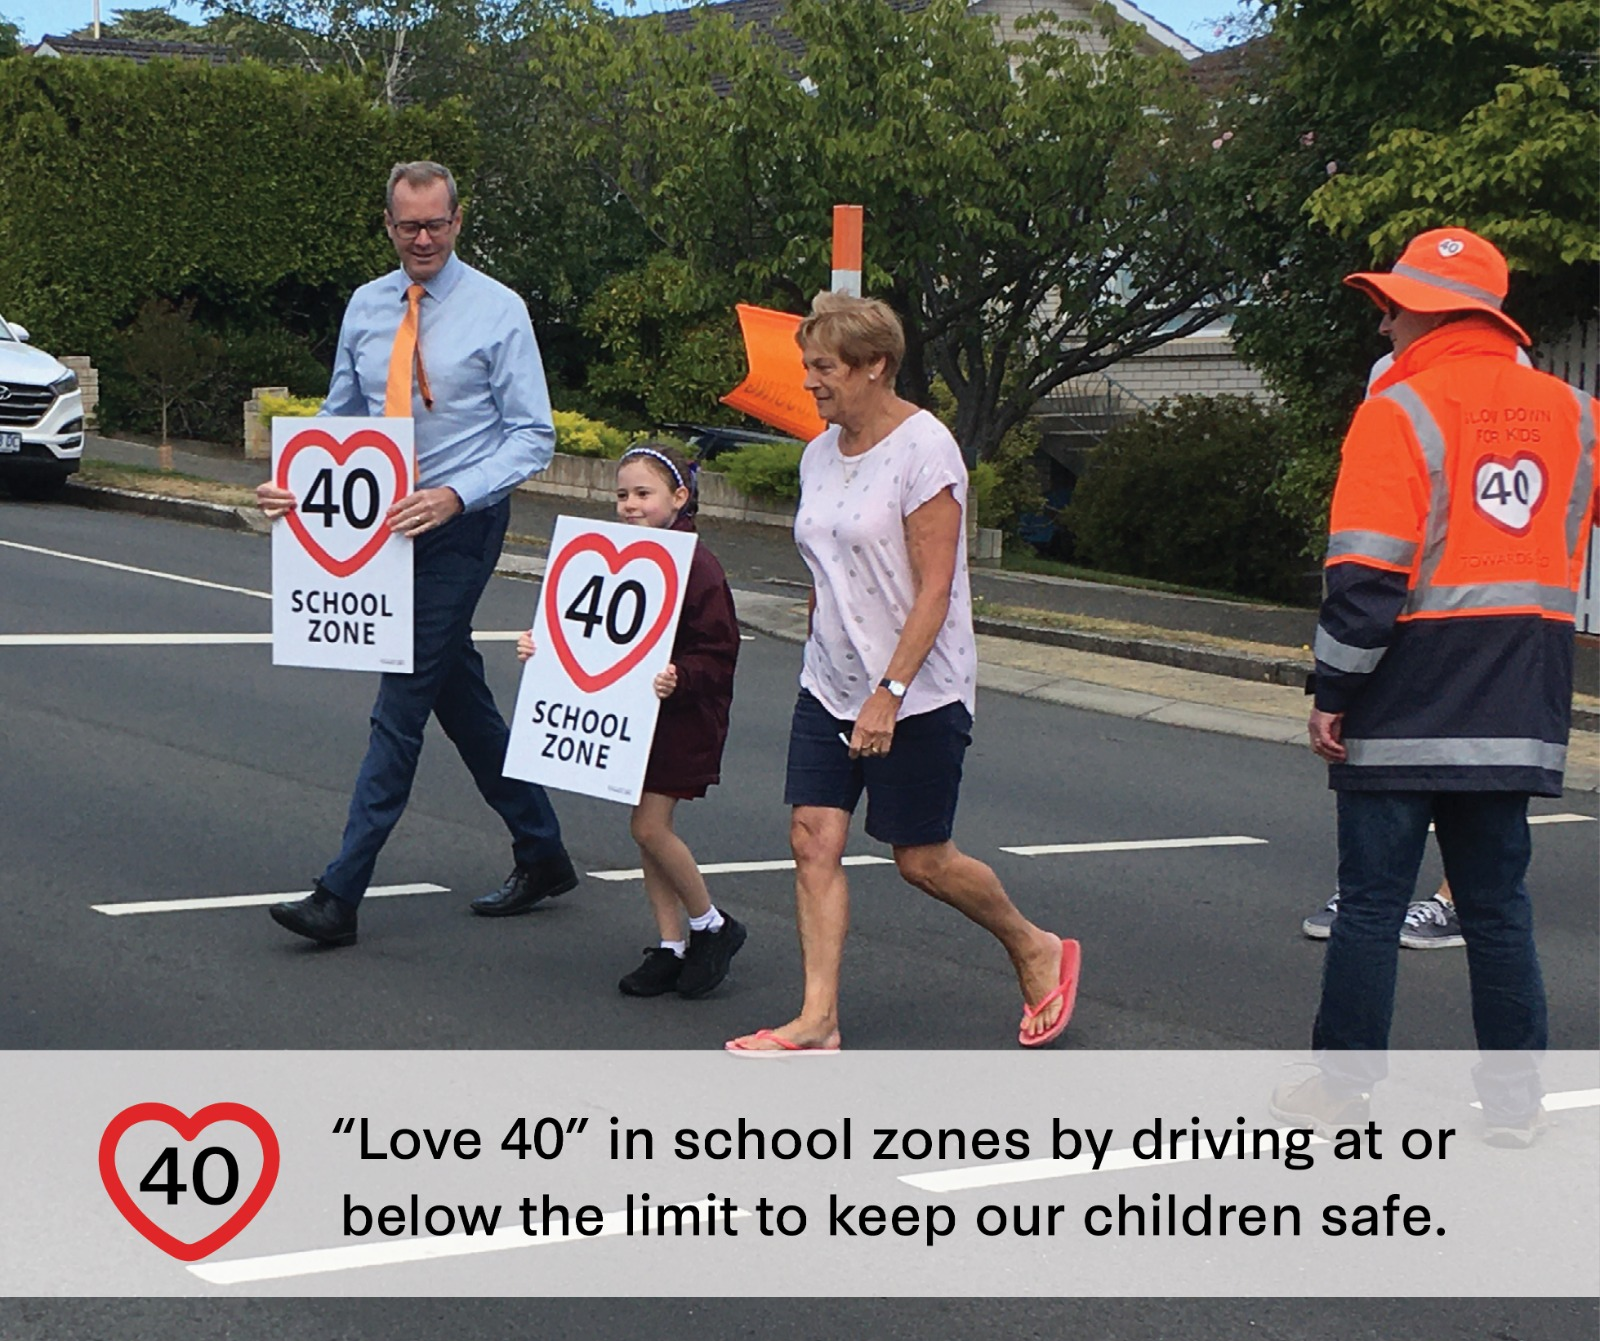 'Love 40' to keep our precious children safe